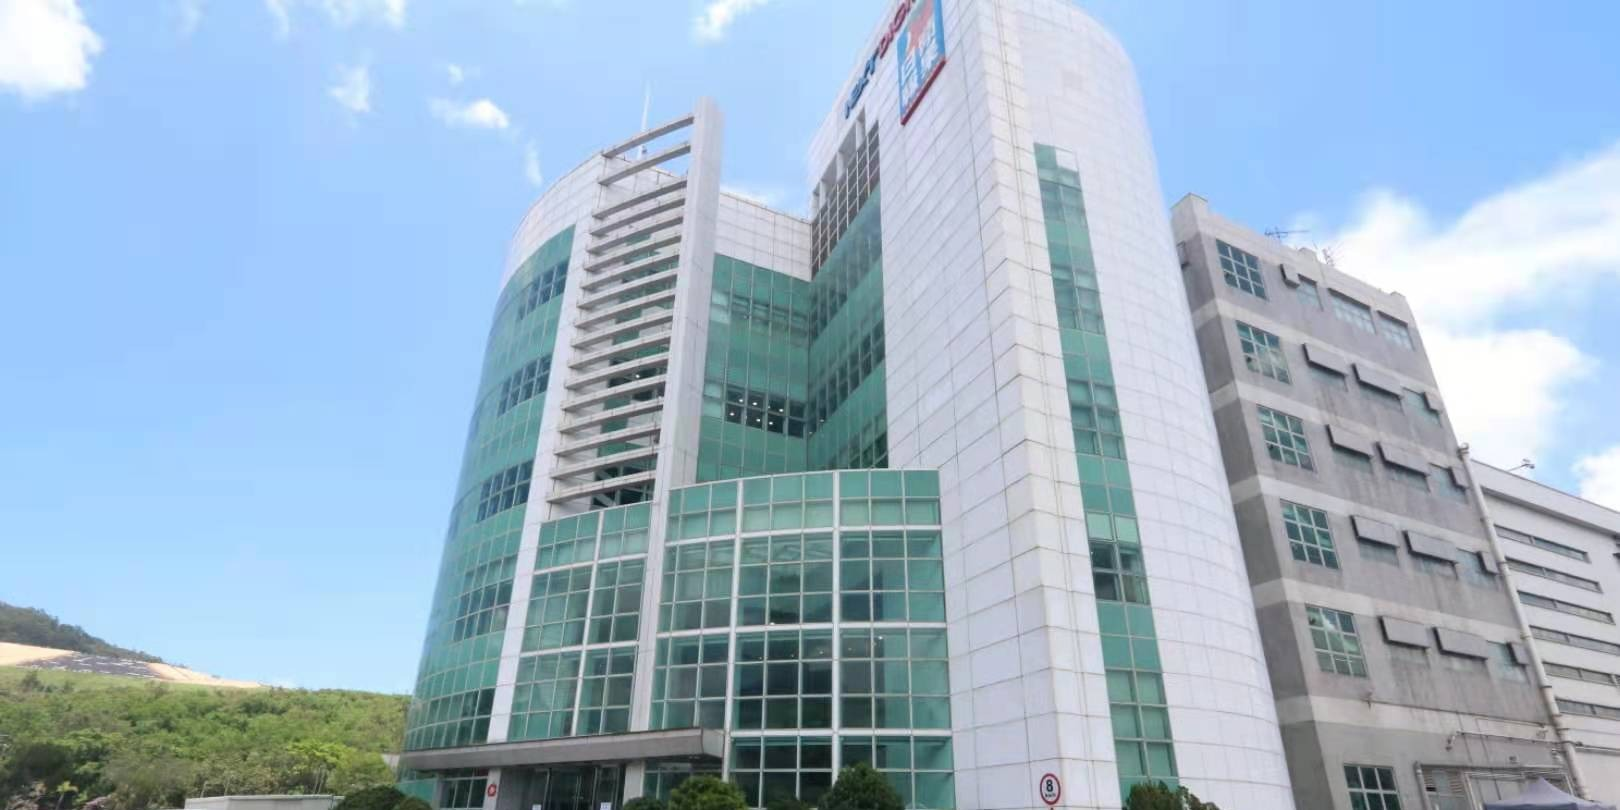 Apple Daily to cease operation on Friday